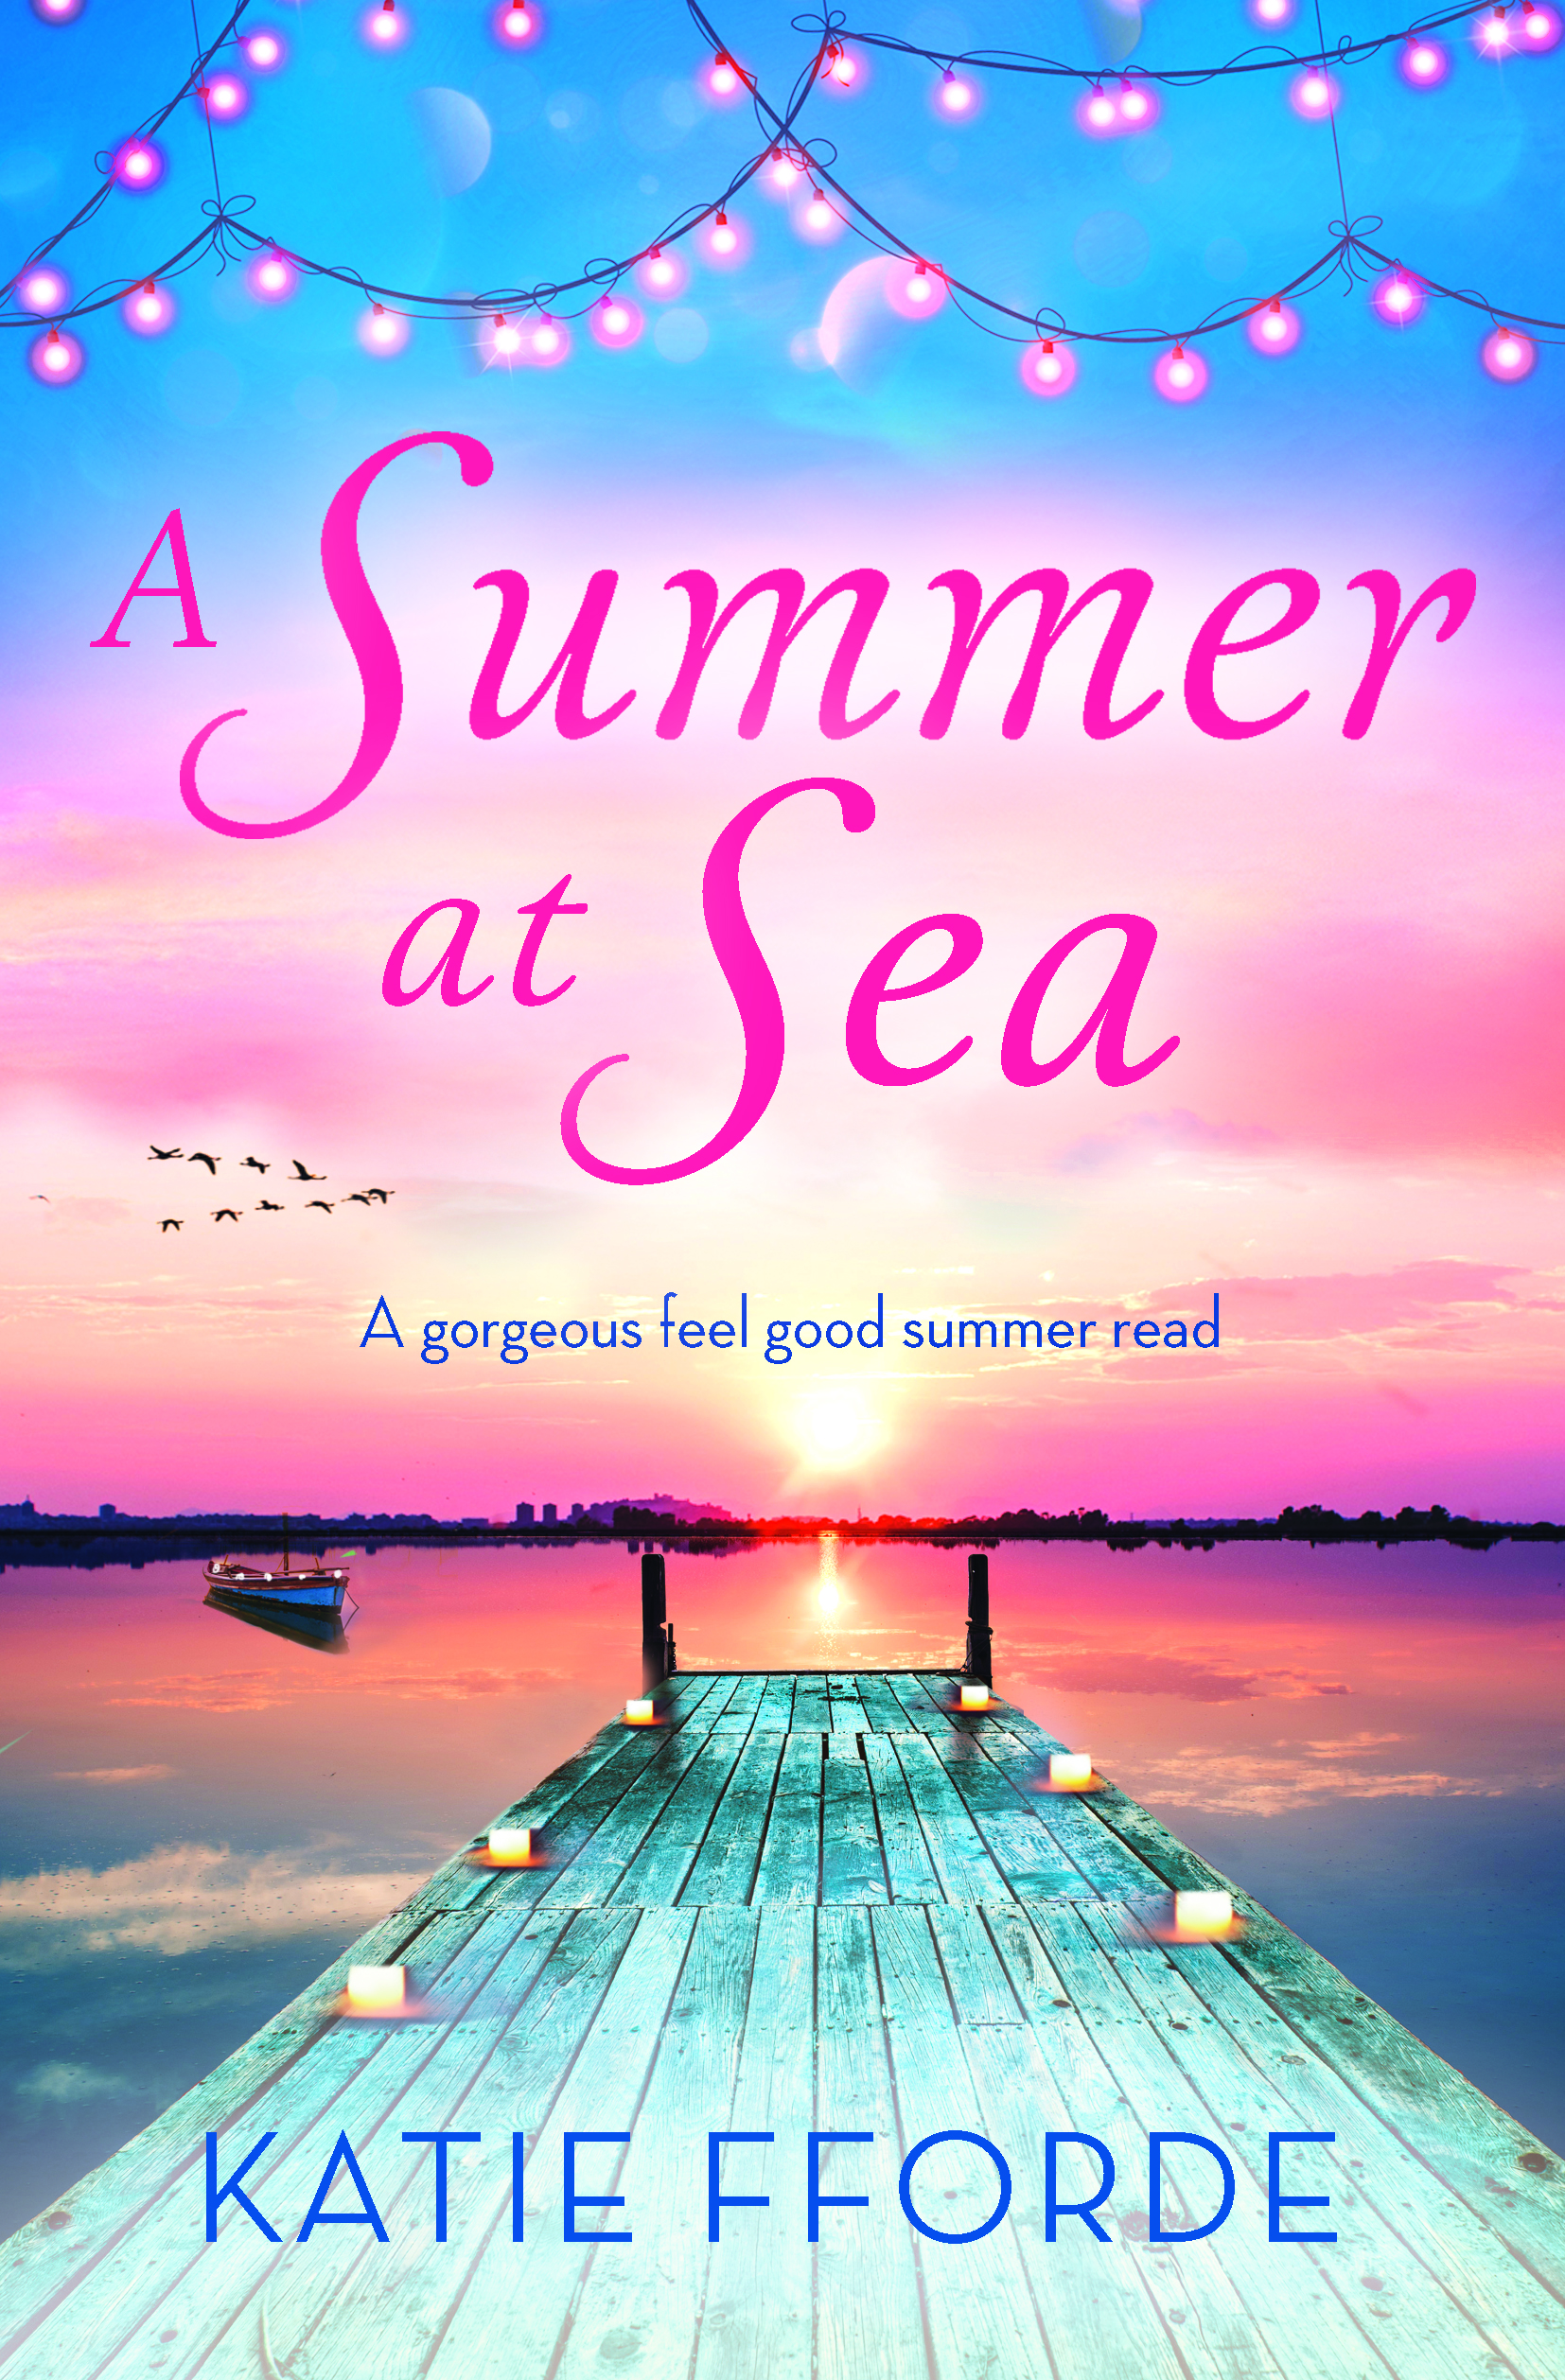 A Summer at Sea